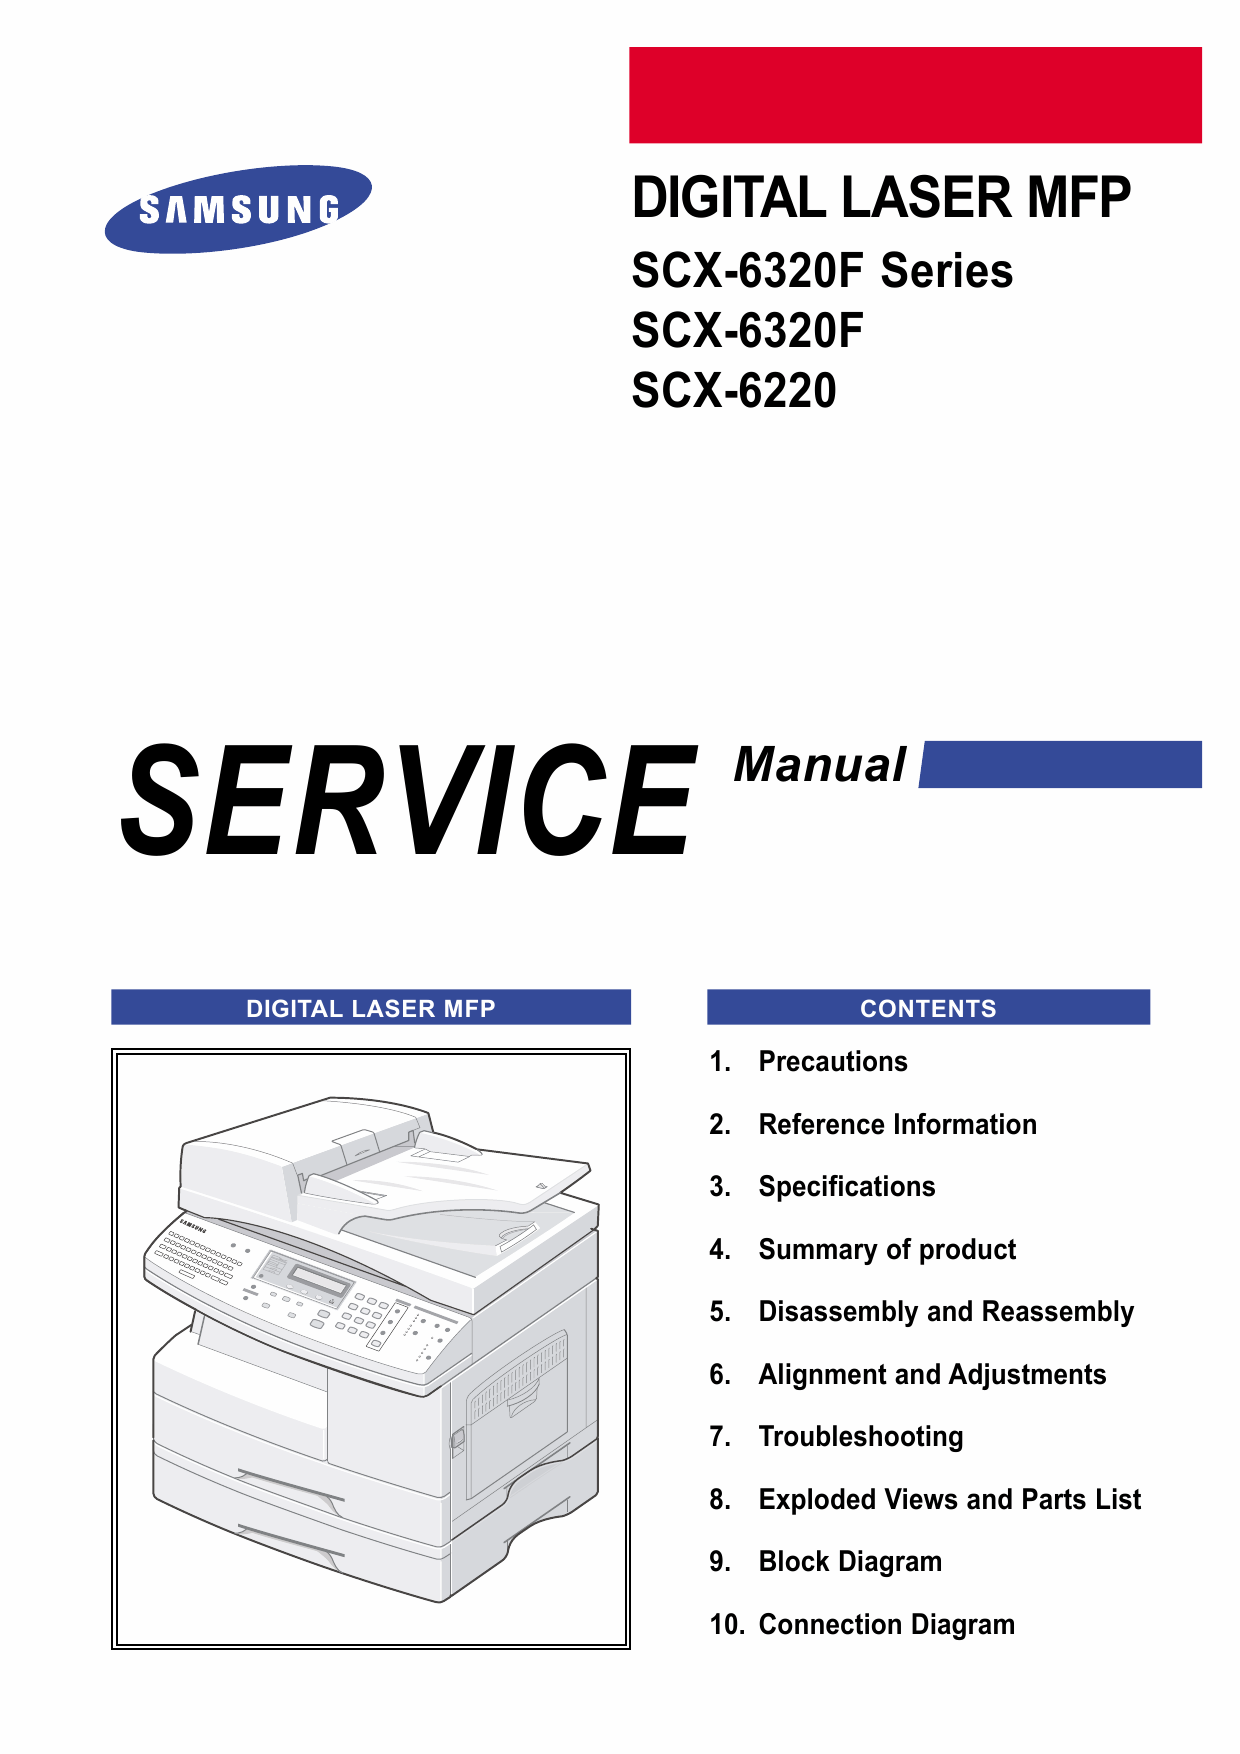 Samsung Digital-Laser-MFP SCX-6320F 6220 Parts and Service Manual-1